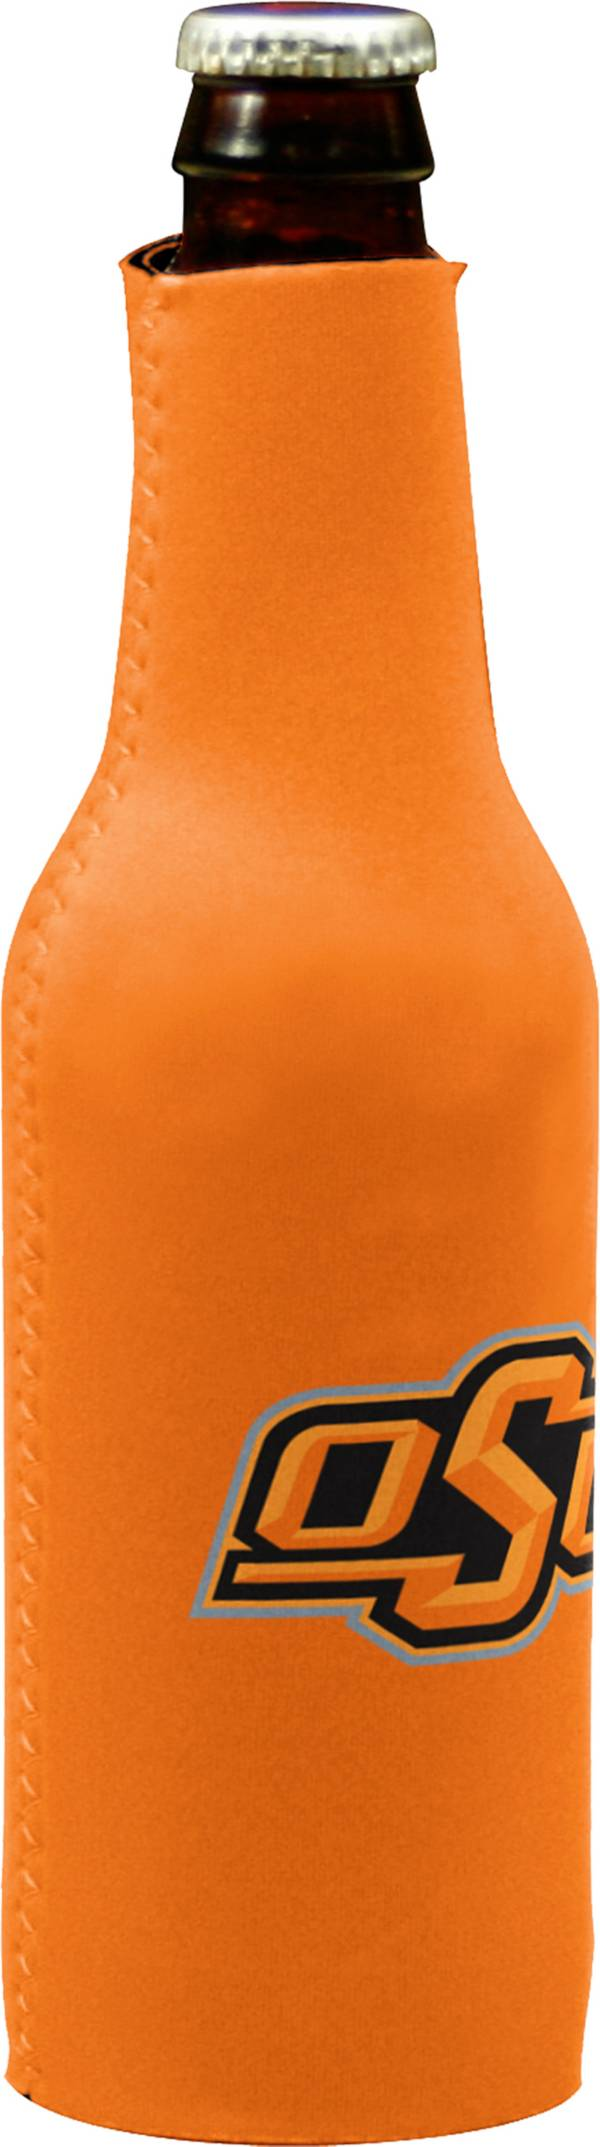 Oklahoma State Cowboys Bottle Koozie product image